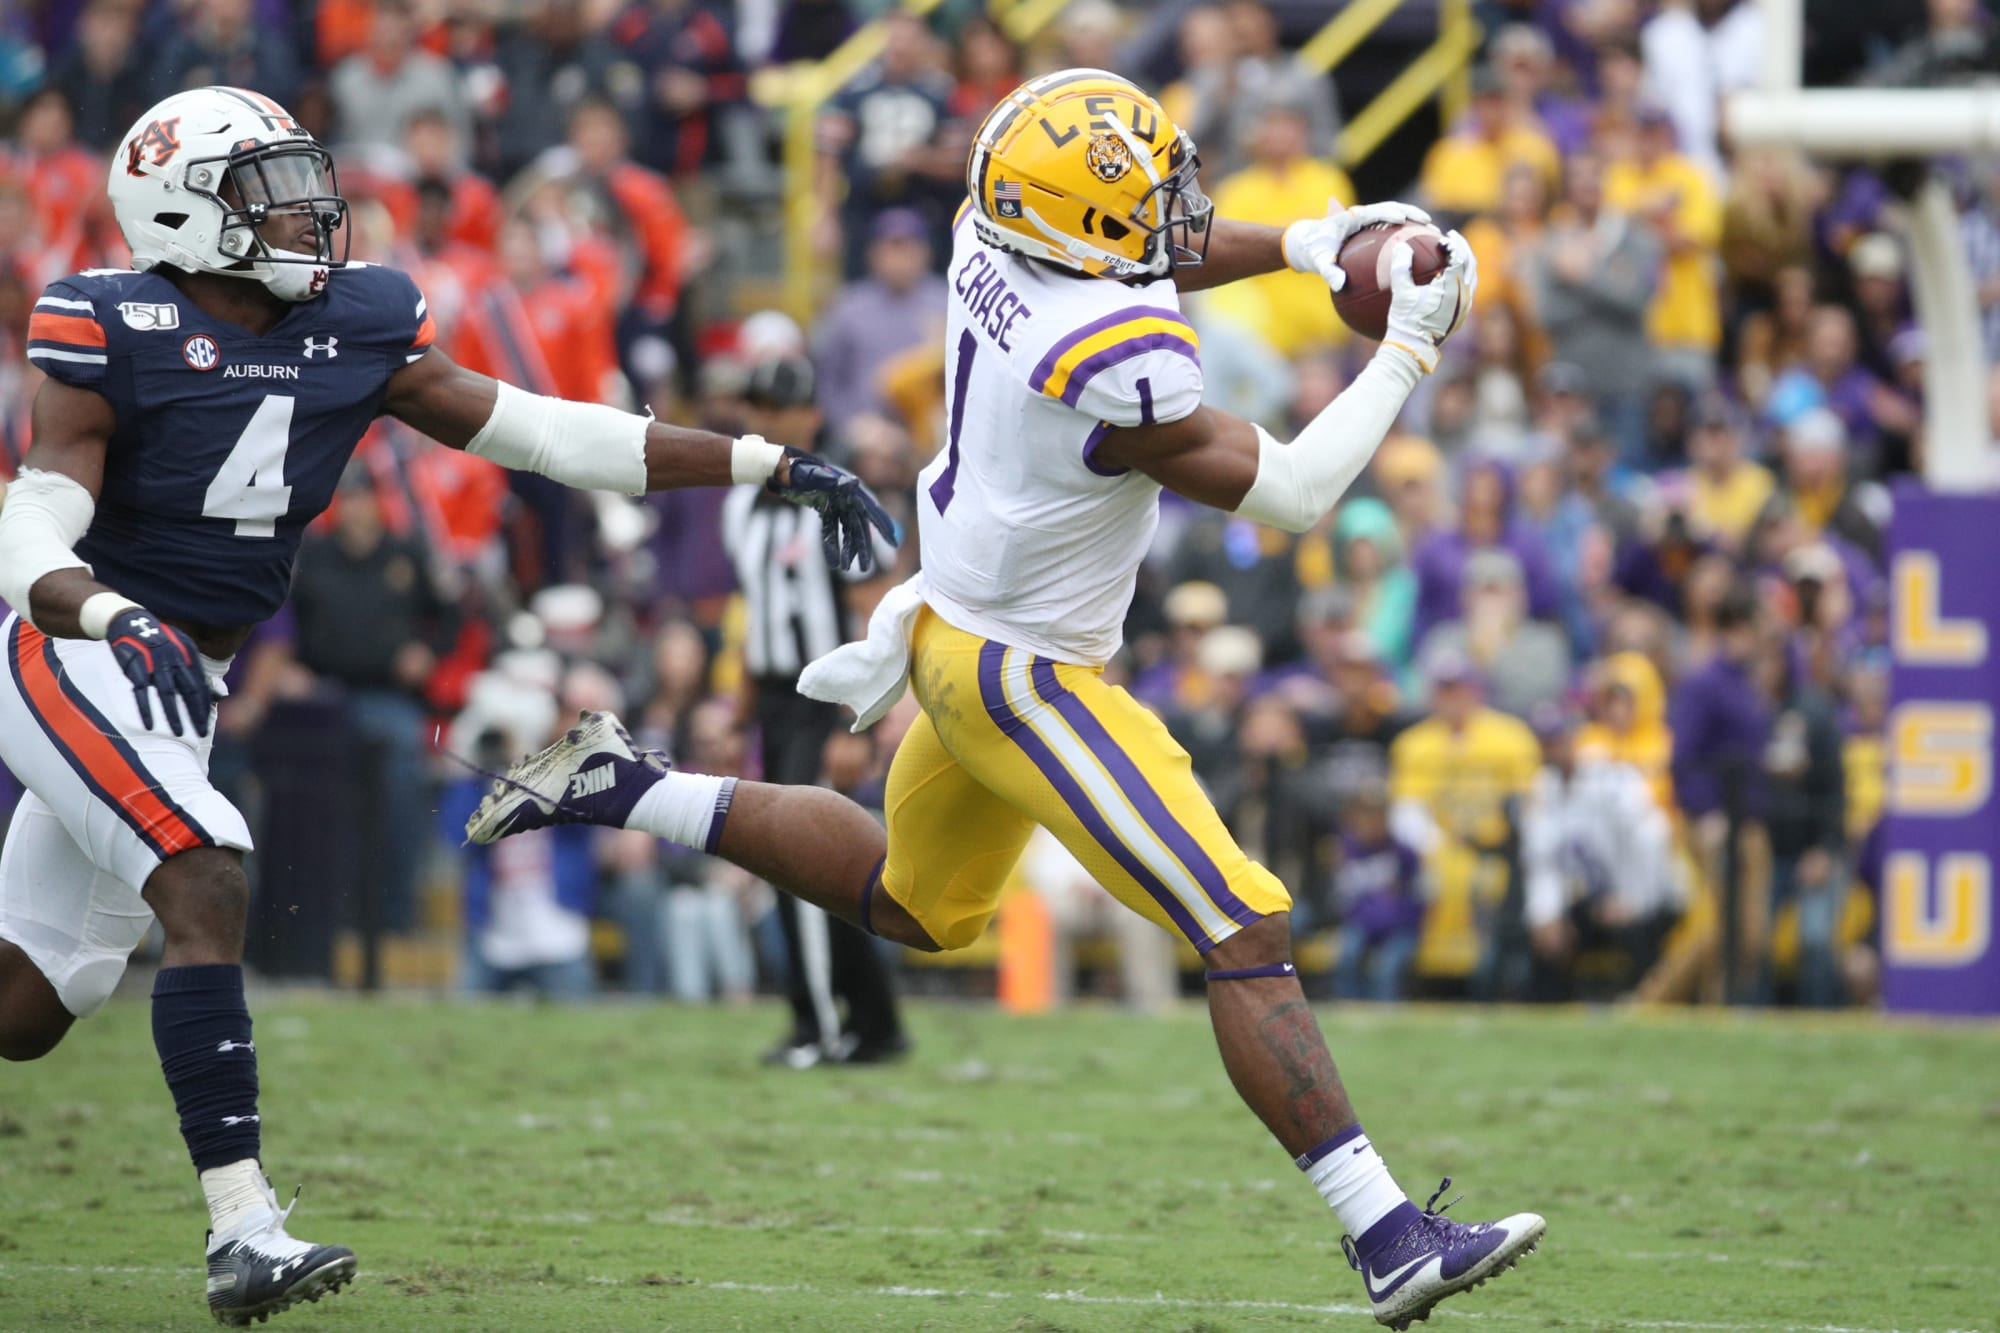 LSU Football: The first sign that analysts are starting to believe in the Tigers longterm